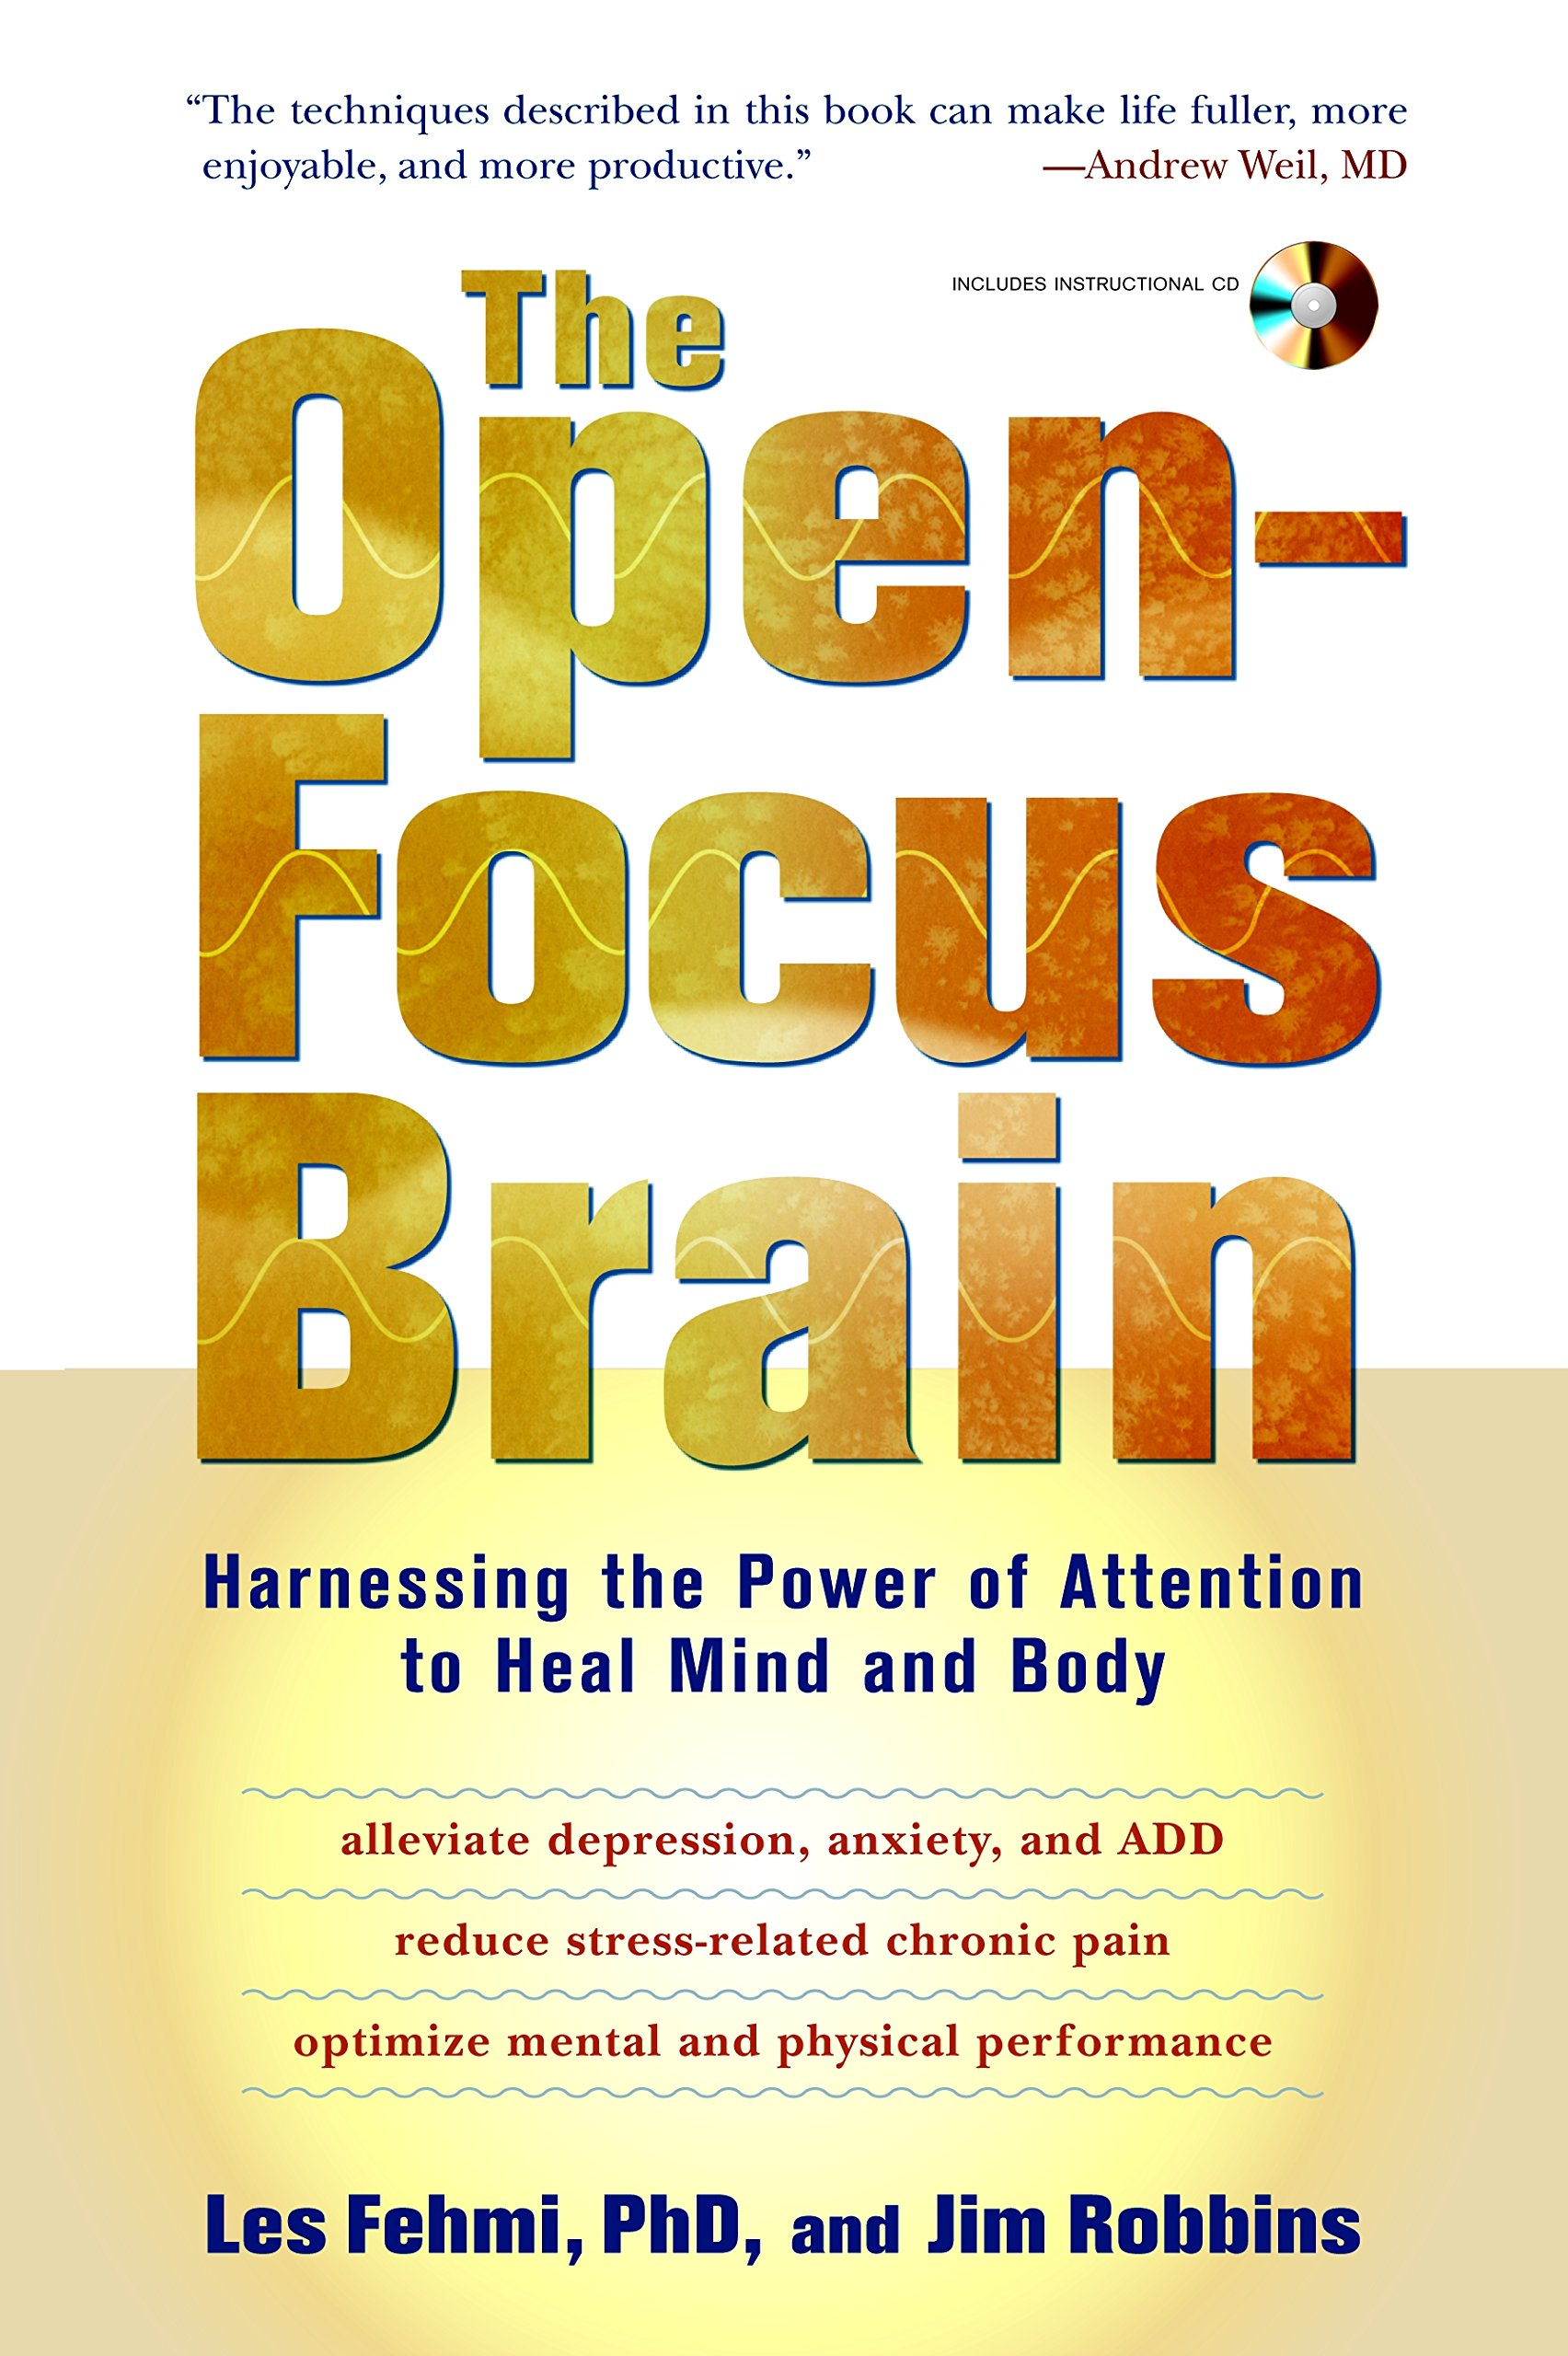 The open focus brain harnessing the power of attention to heal the open focus brain harnessing the power of attention to heal mind and body les fehmi jim robbins 9781590306123 amazon books fandeluxe Images